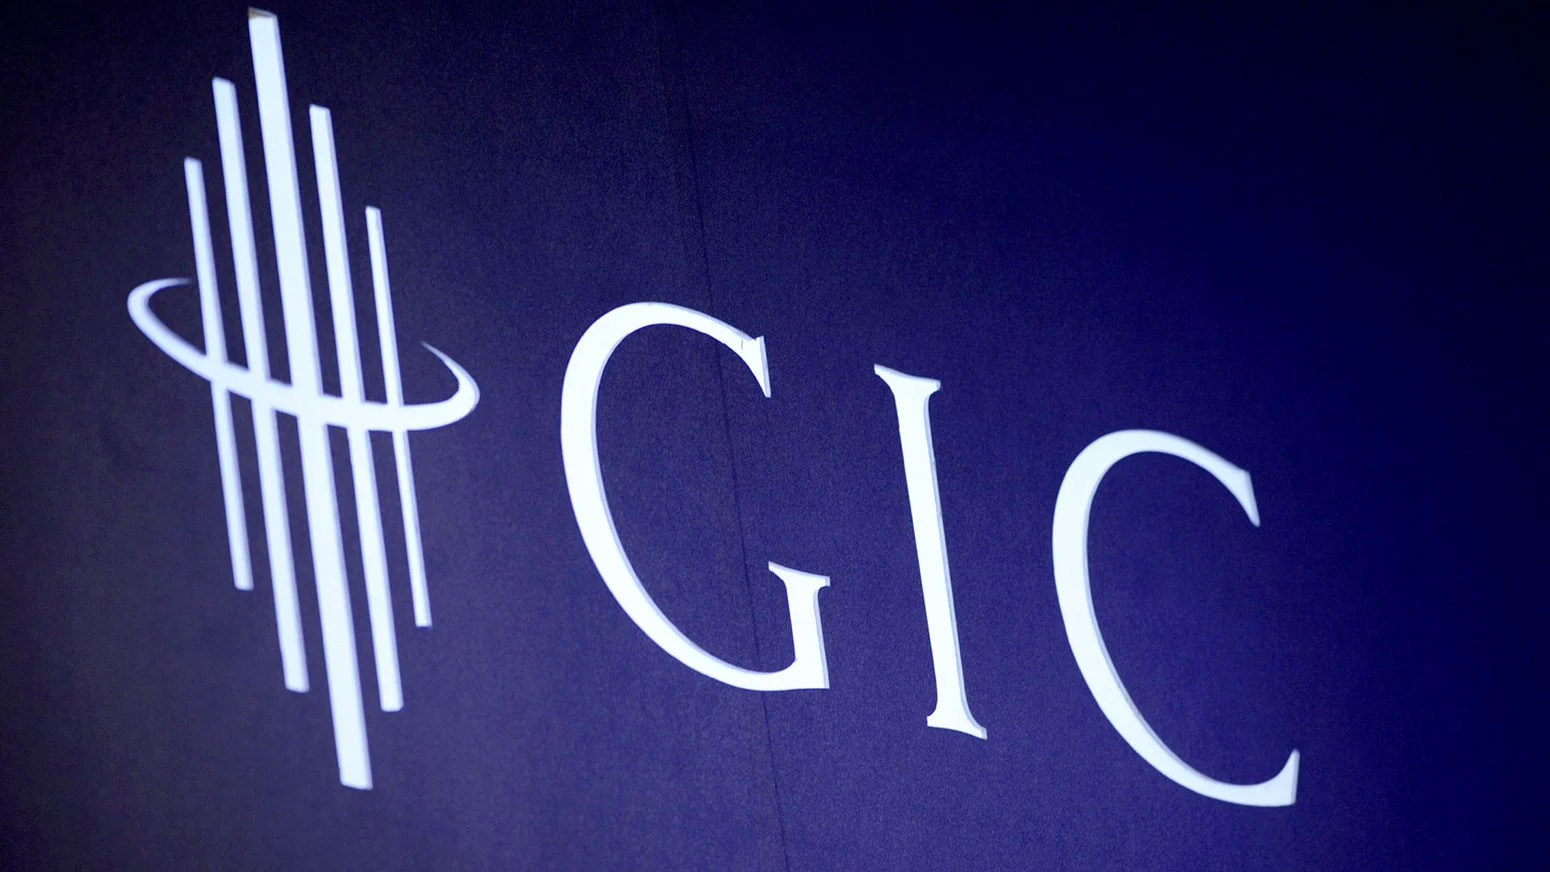 GIC returns a record 37.5%, reaching ST in assets: Here are some of